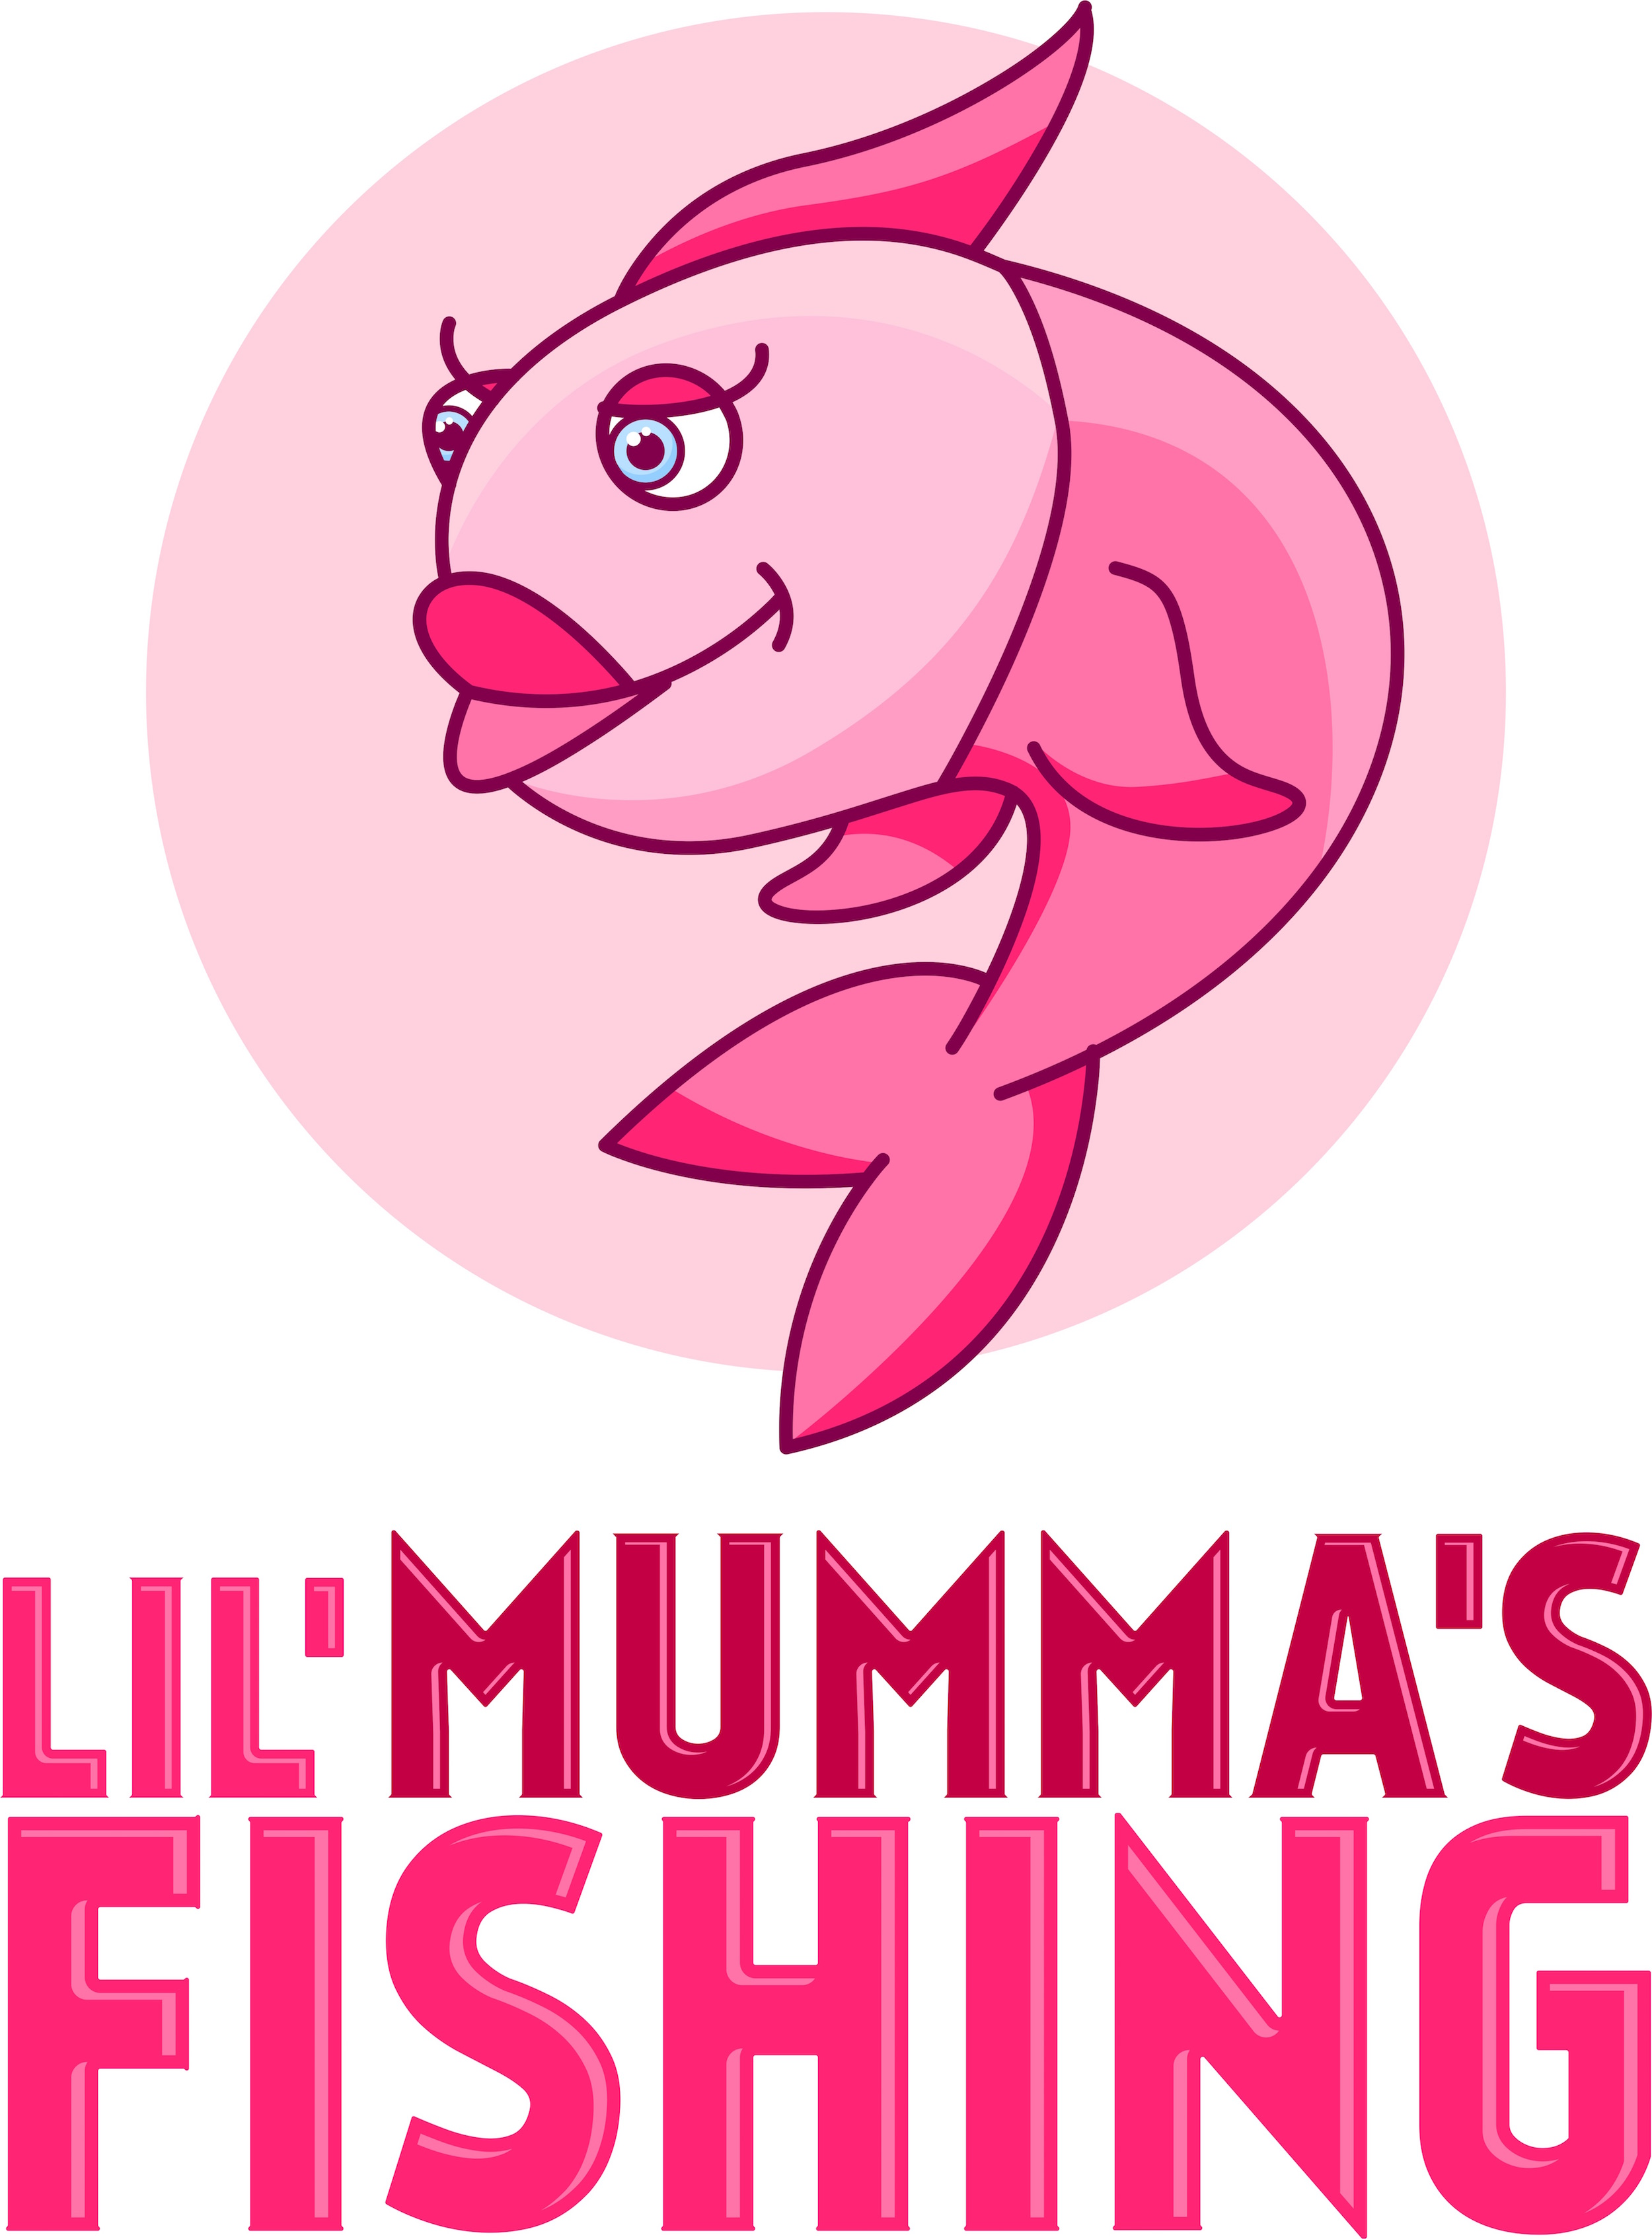 Introducing Lil' Mumma